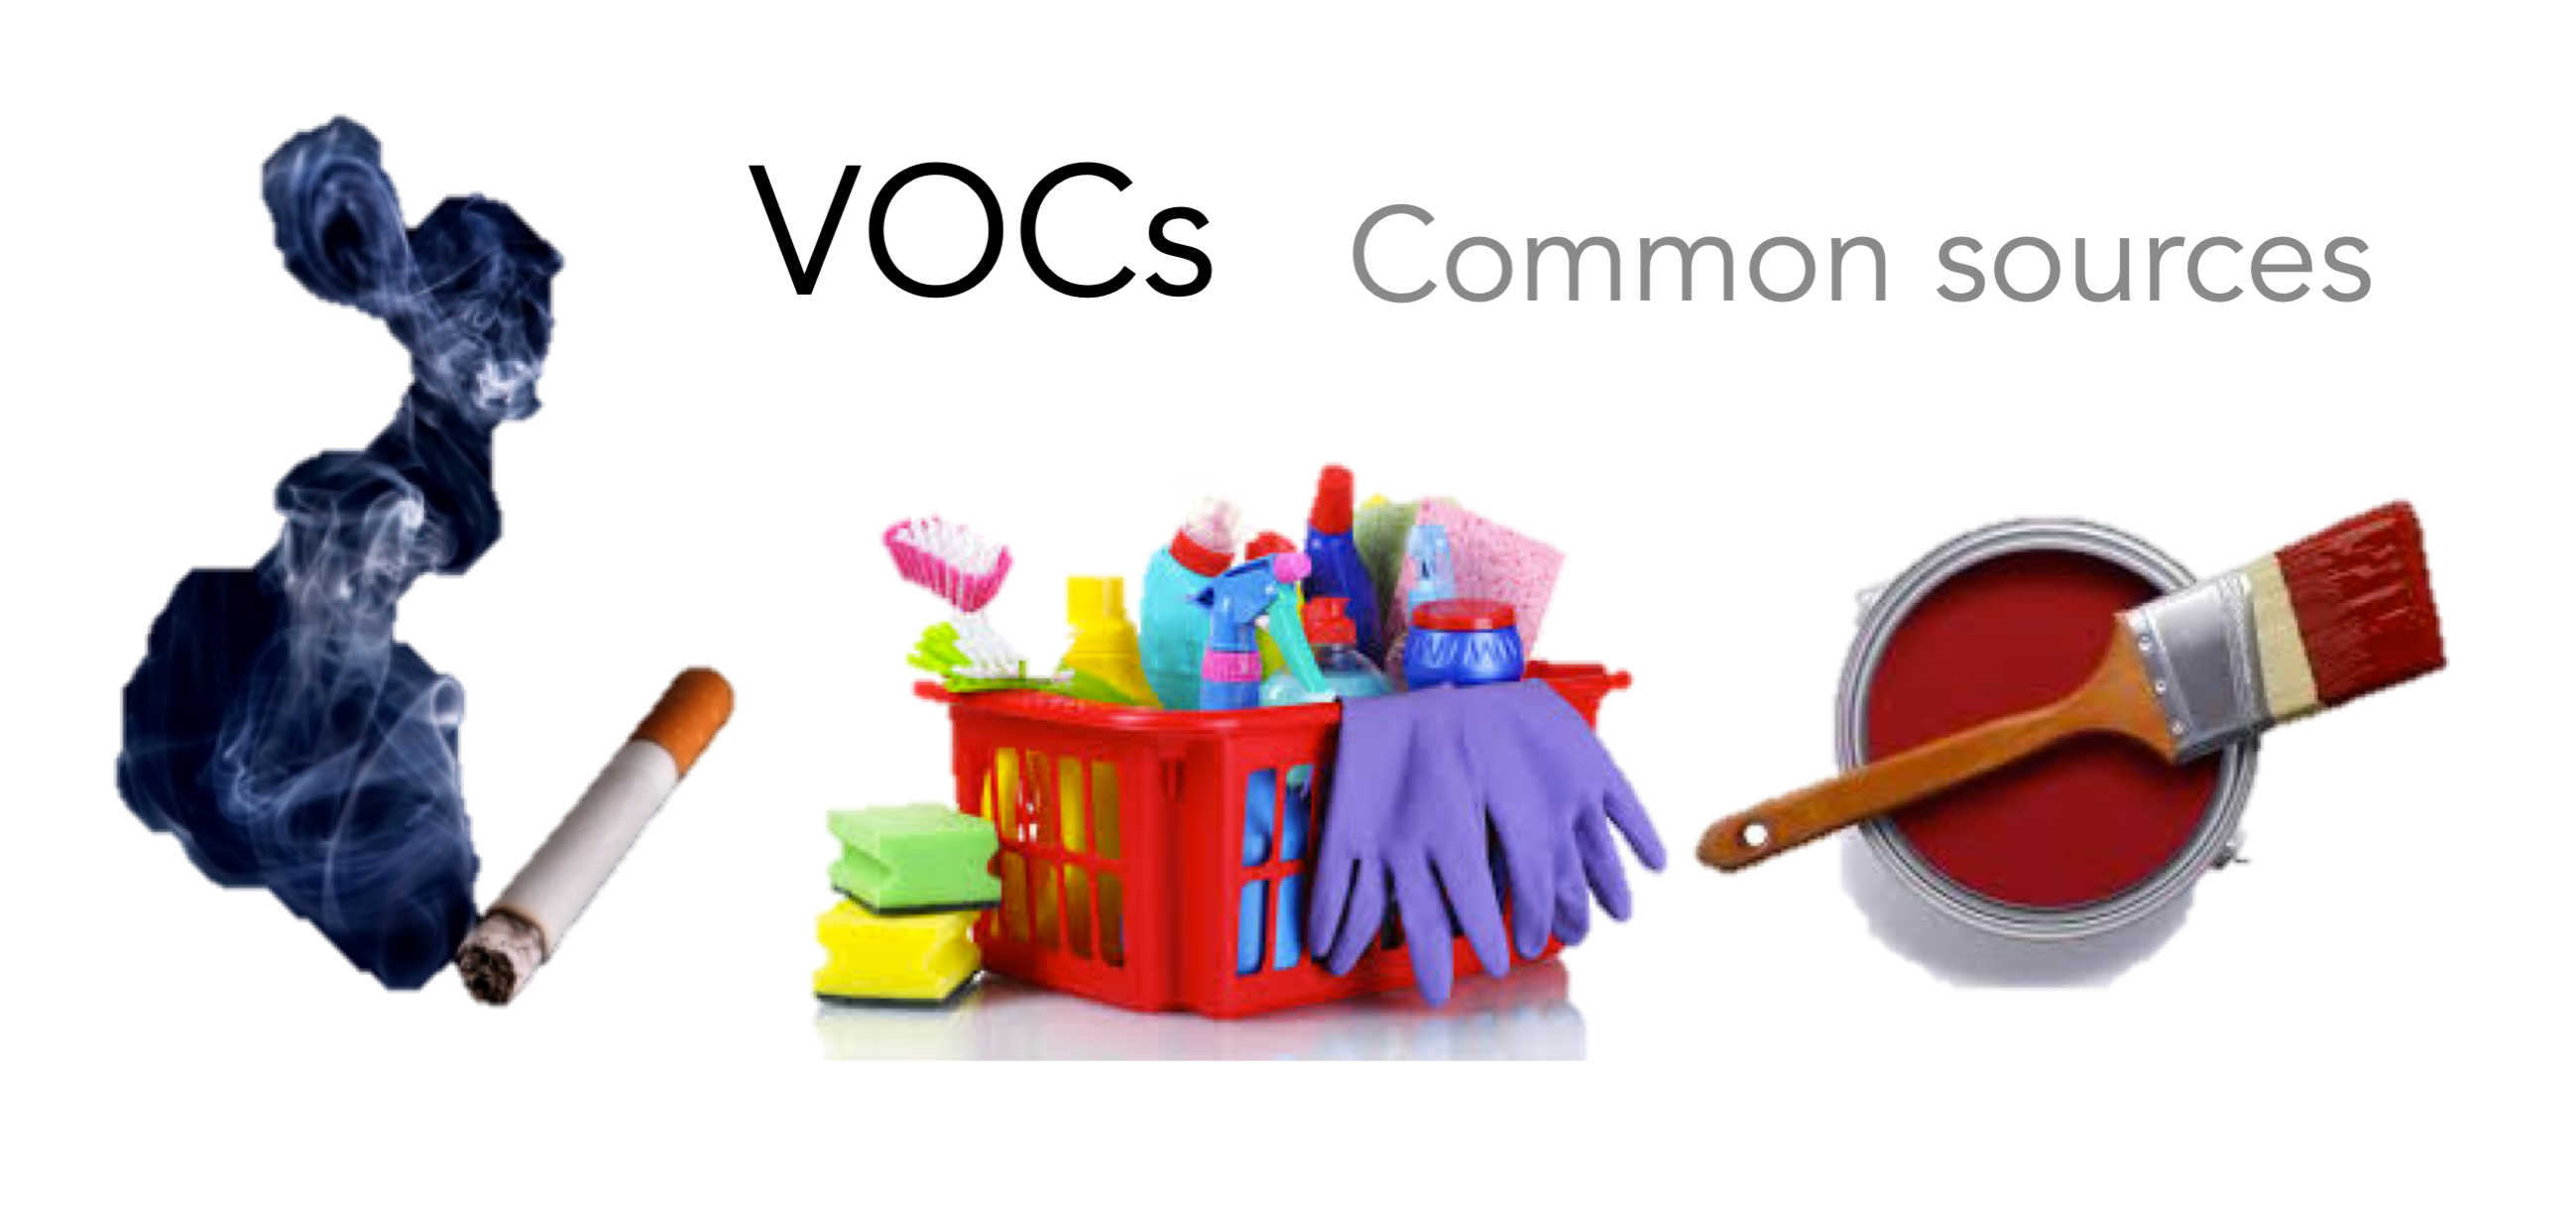 VOCs Common Sources